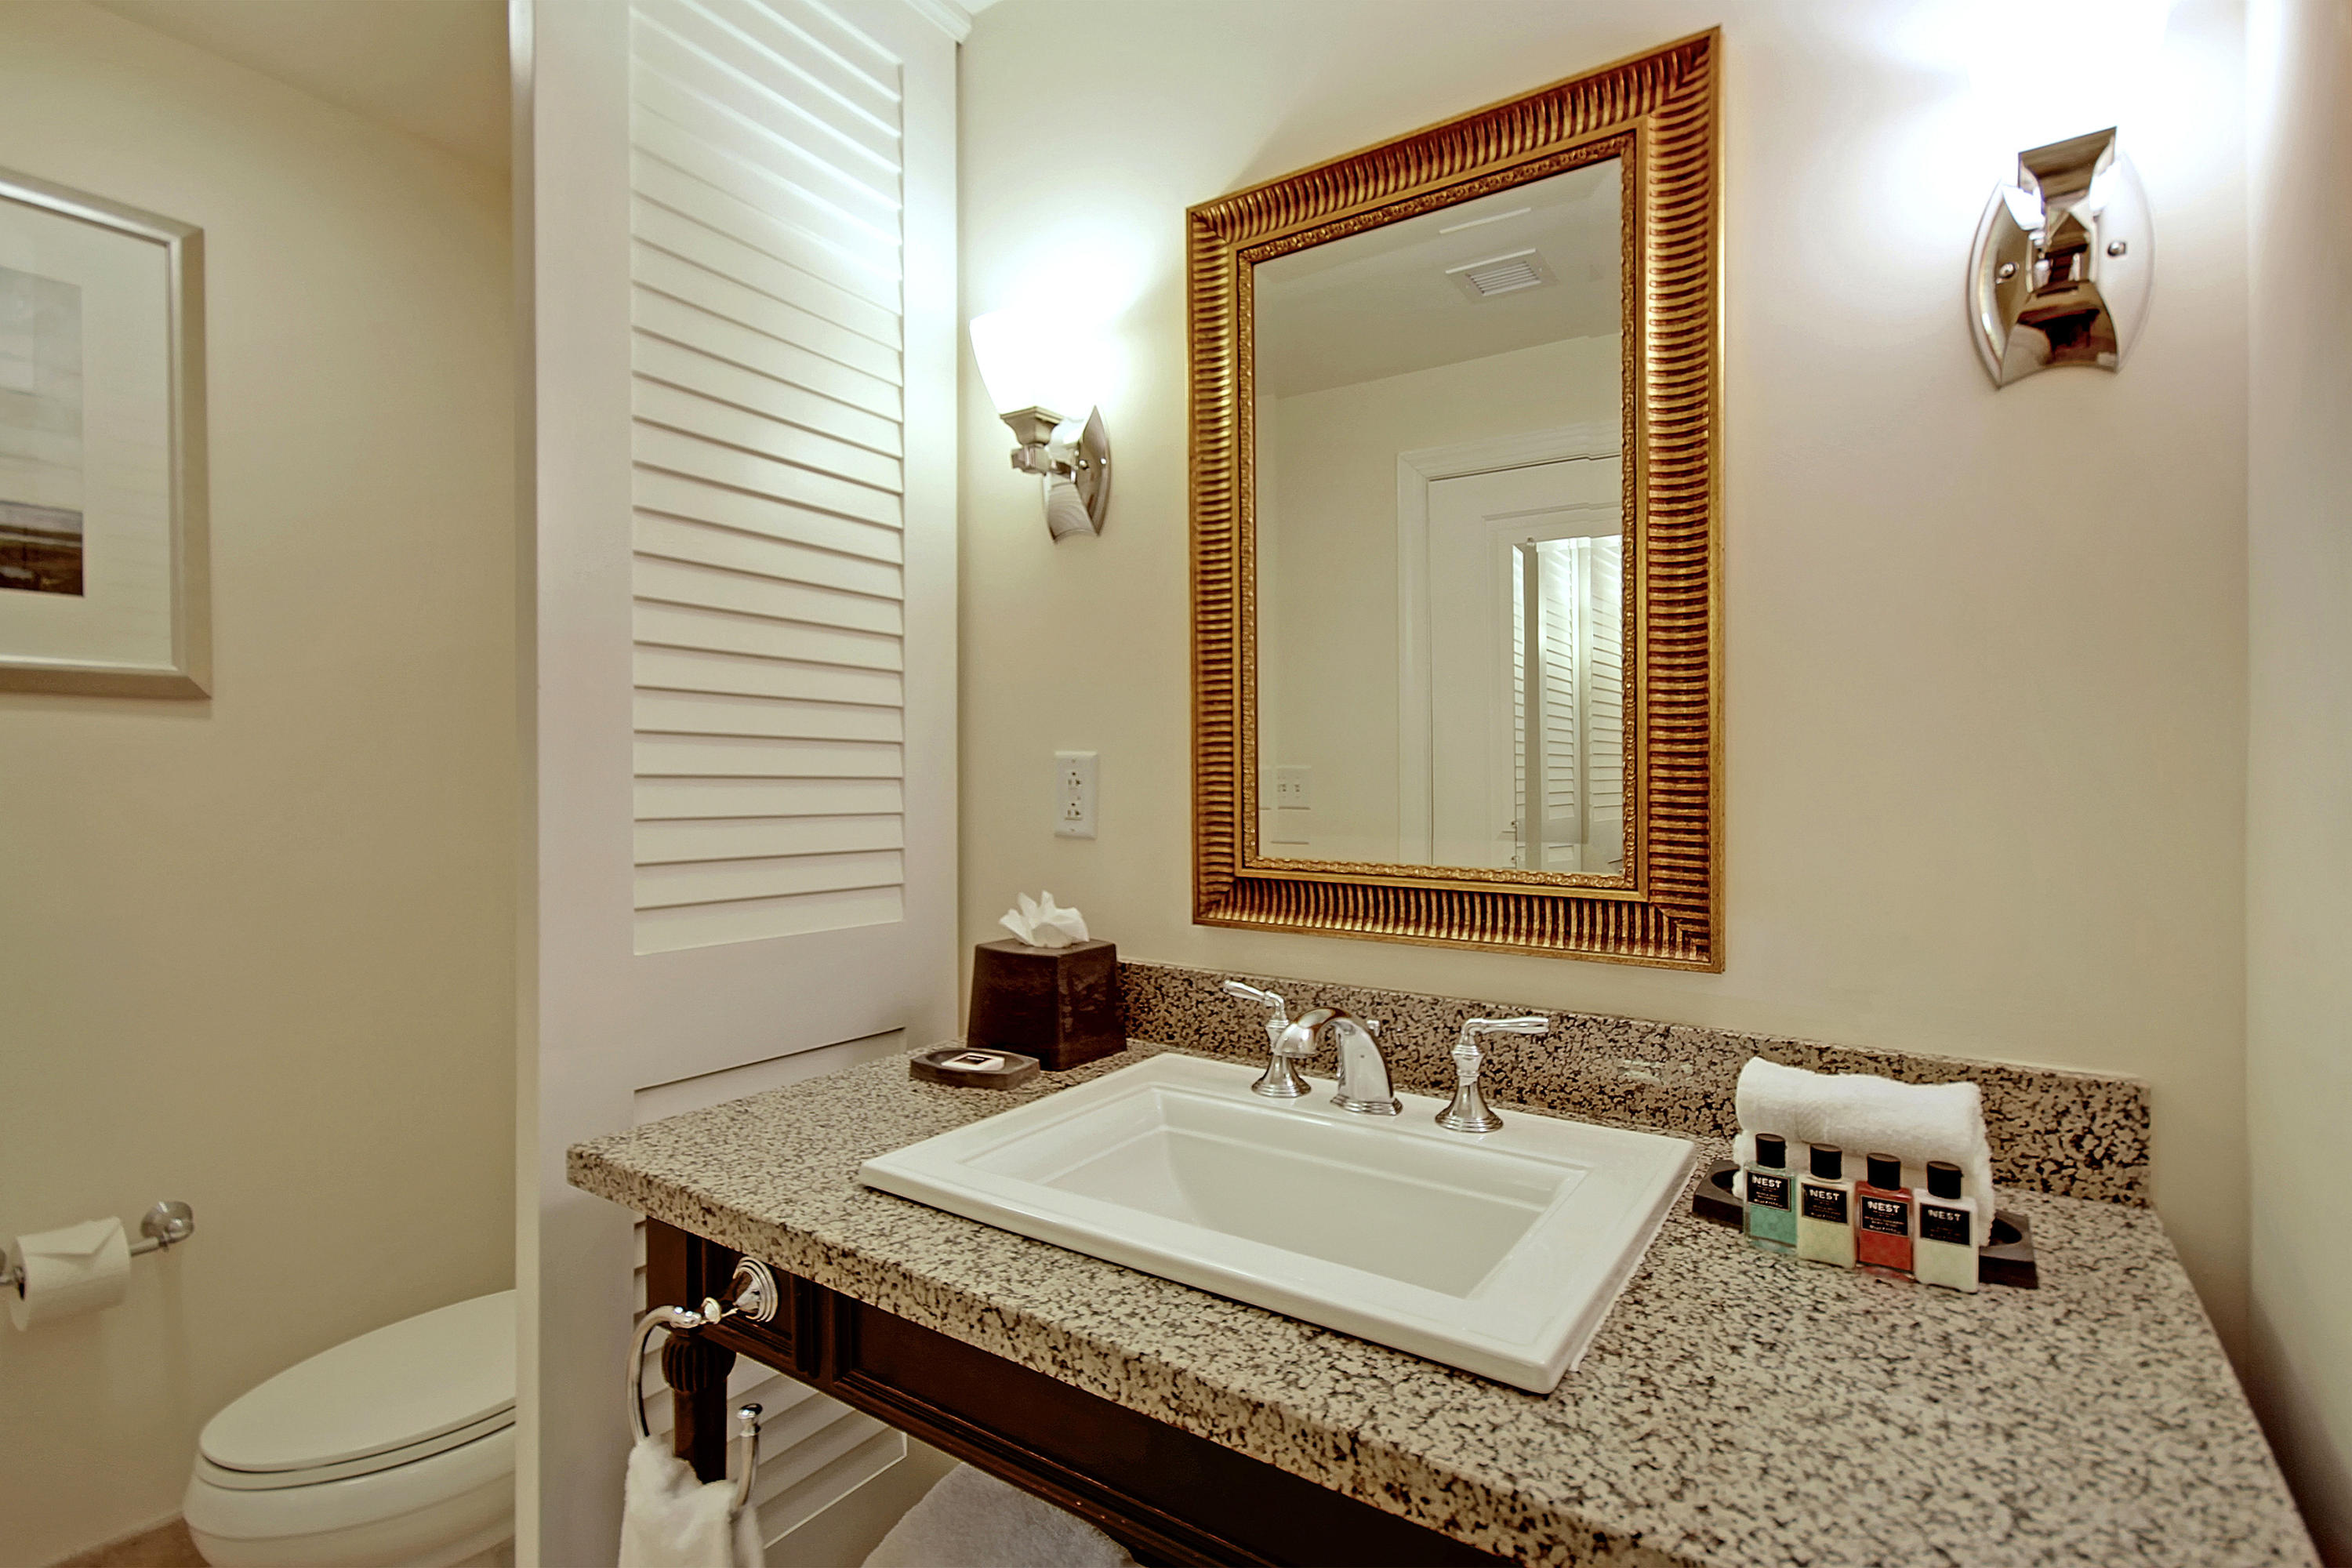 Wild Dunes Homes For Sale - 406-A Village At Wild Dunes, Isle of Palms, SC - 13